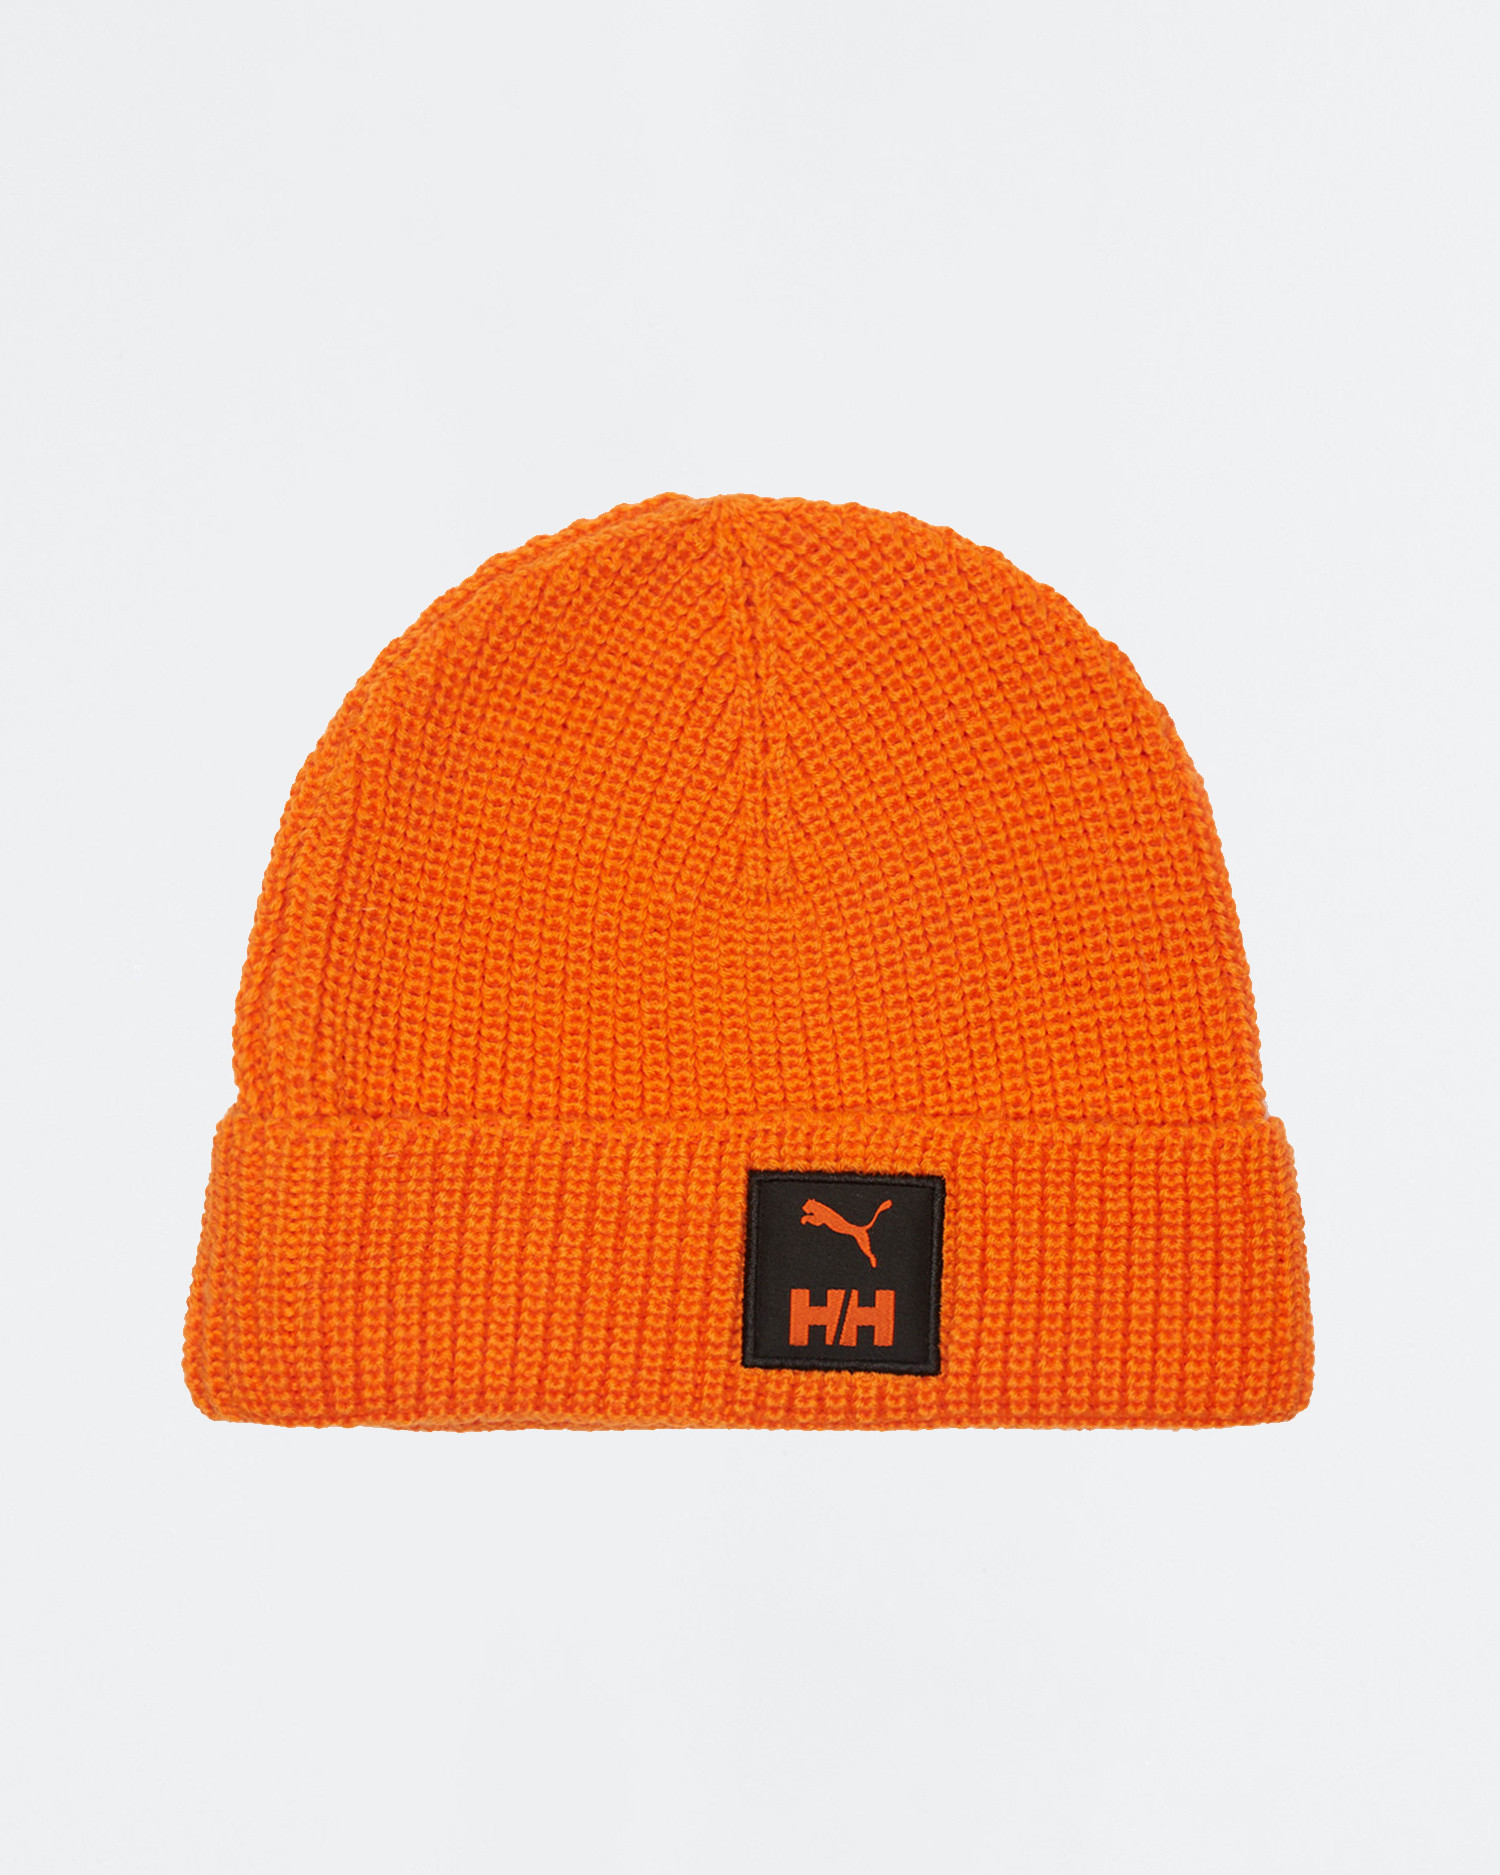 Puma x Helly Hansen Beanie Black/orange popsicle